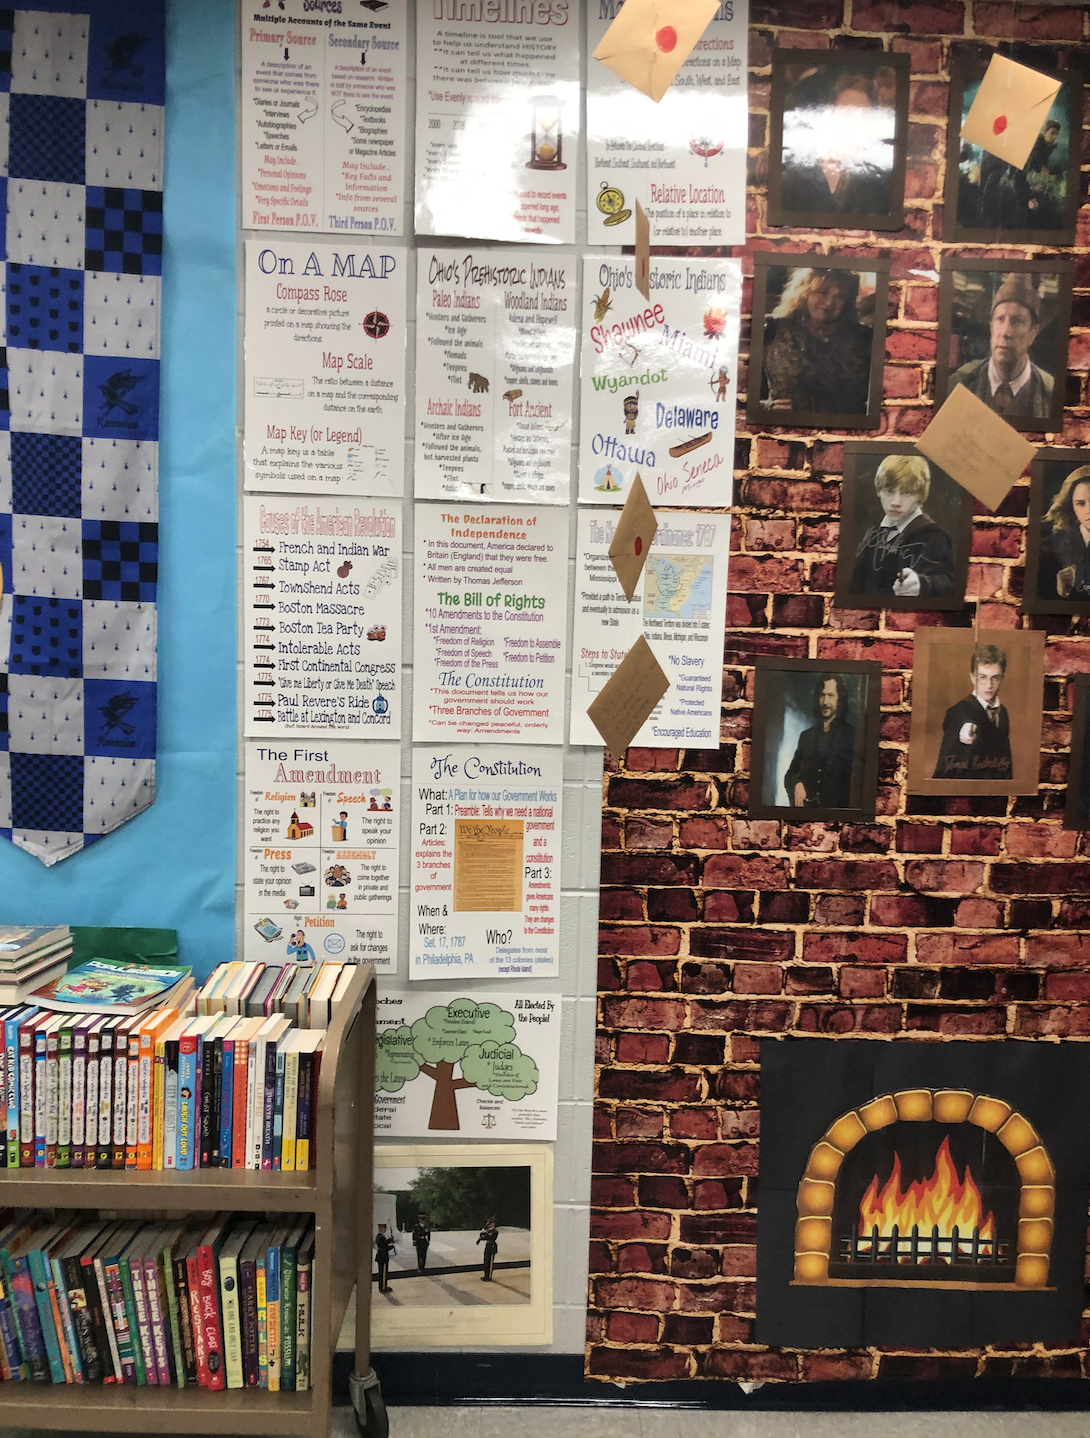 Next to the fireplace are some social studies posters to help with what we will be learning this year. A good place to look for review.